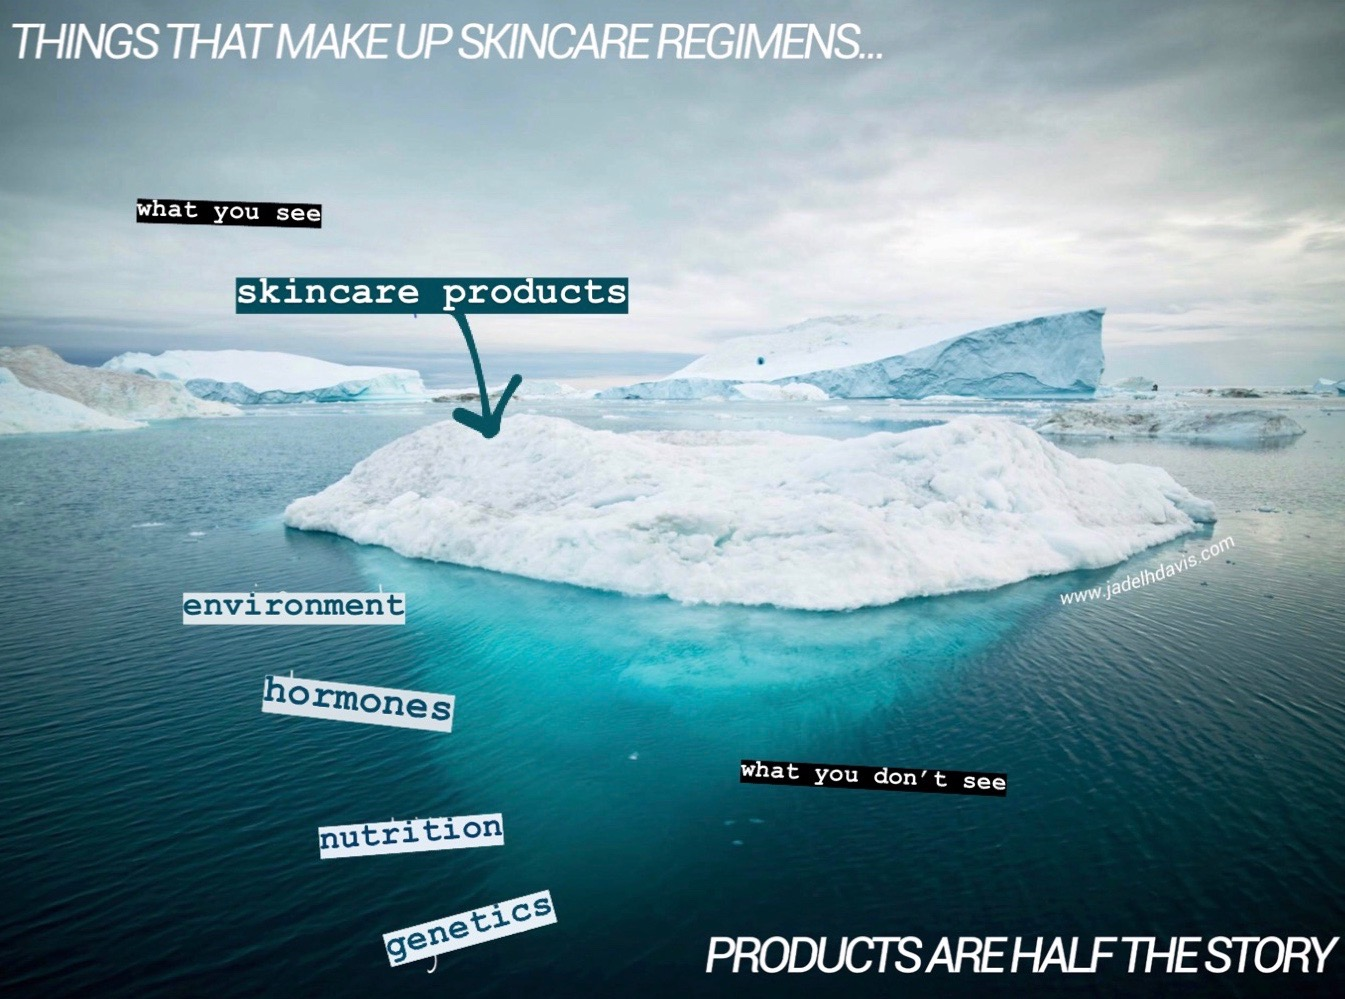 SKINCARE PRODUCTS ARE ONLY THE TIP OF THE ICEBERG -